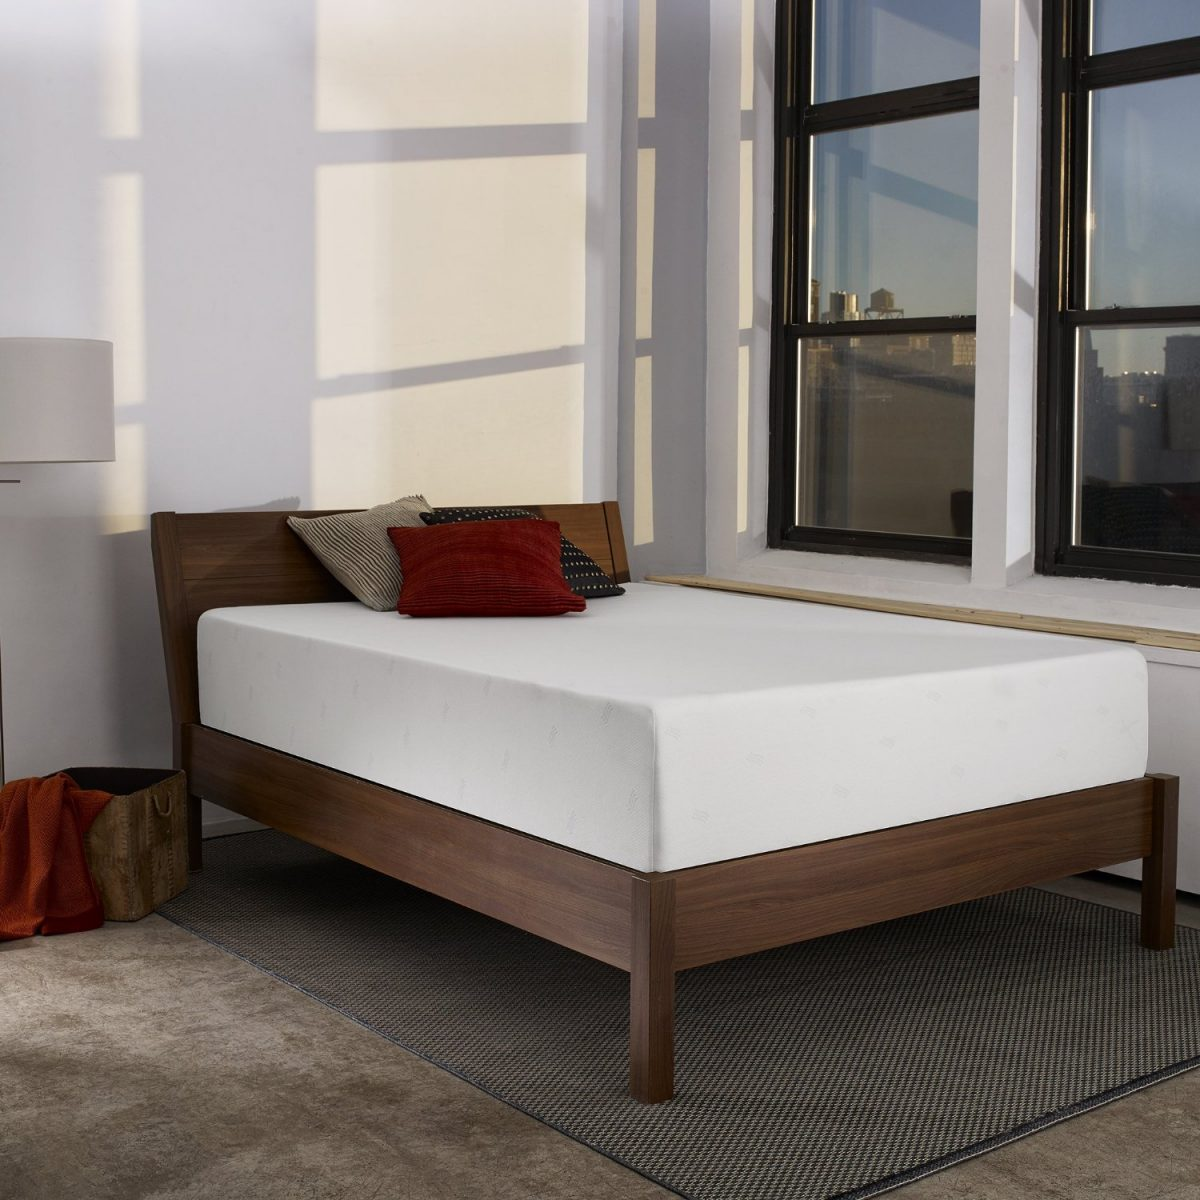 Image of: Cool Queen Mattress Cover Renovations